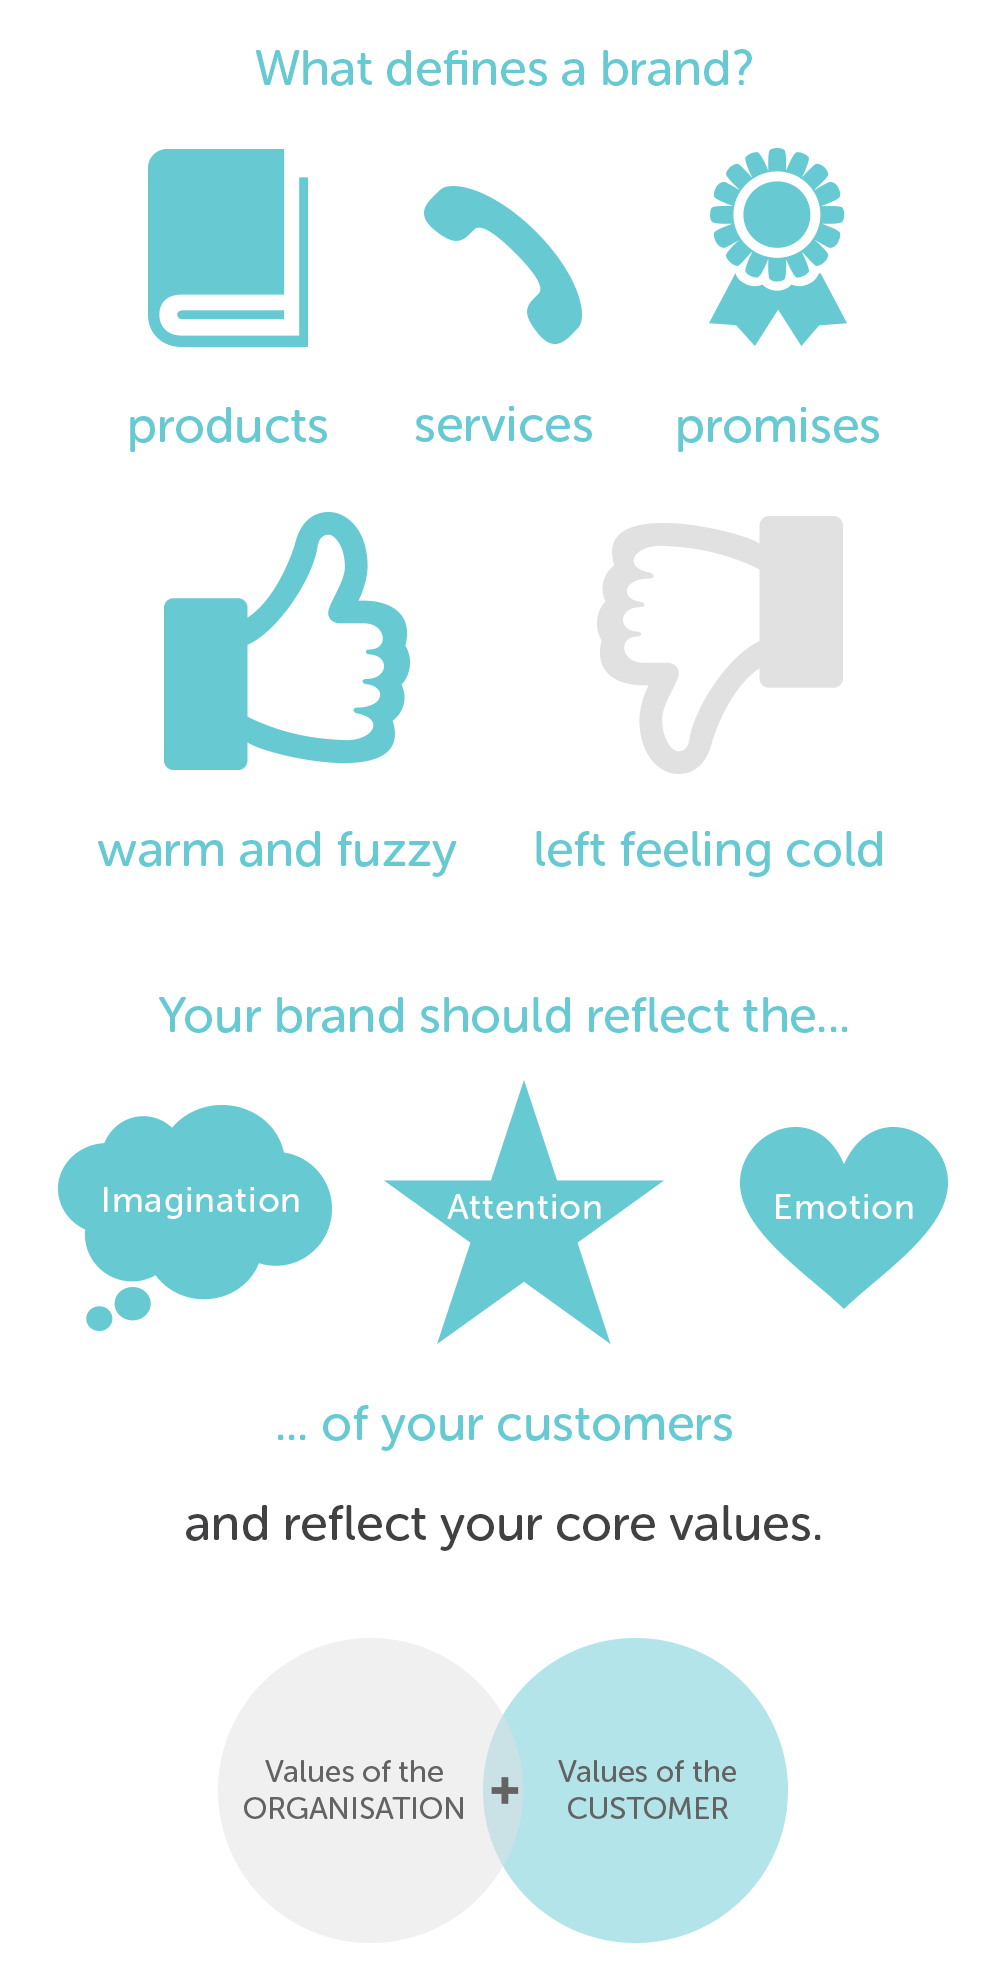 What defines a brand?